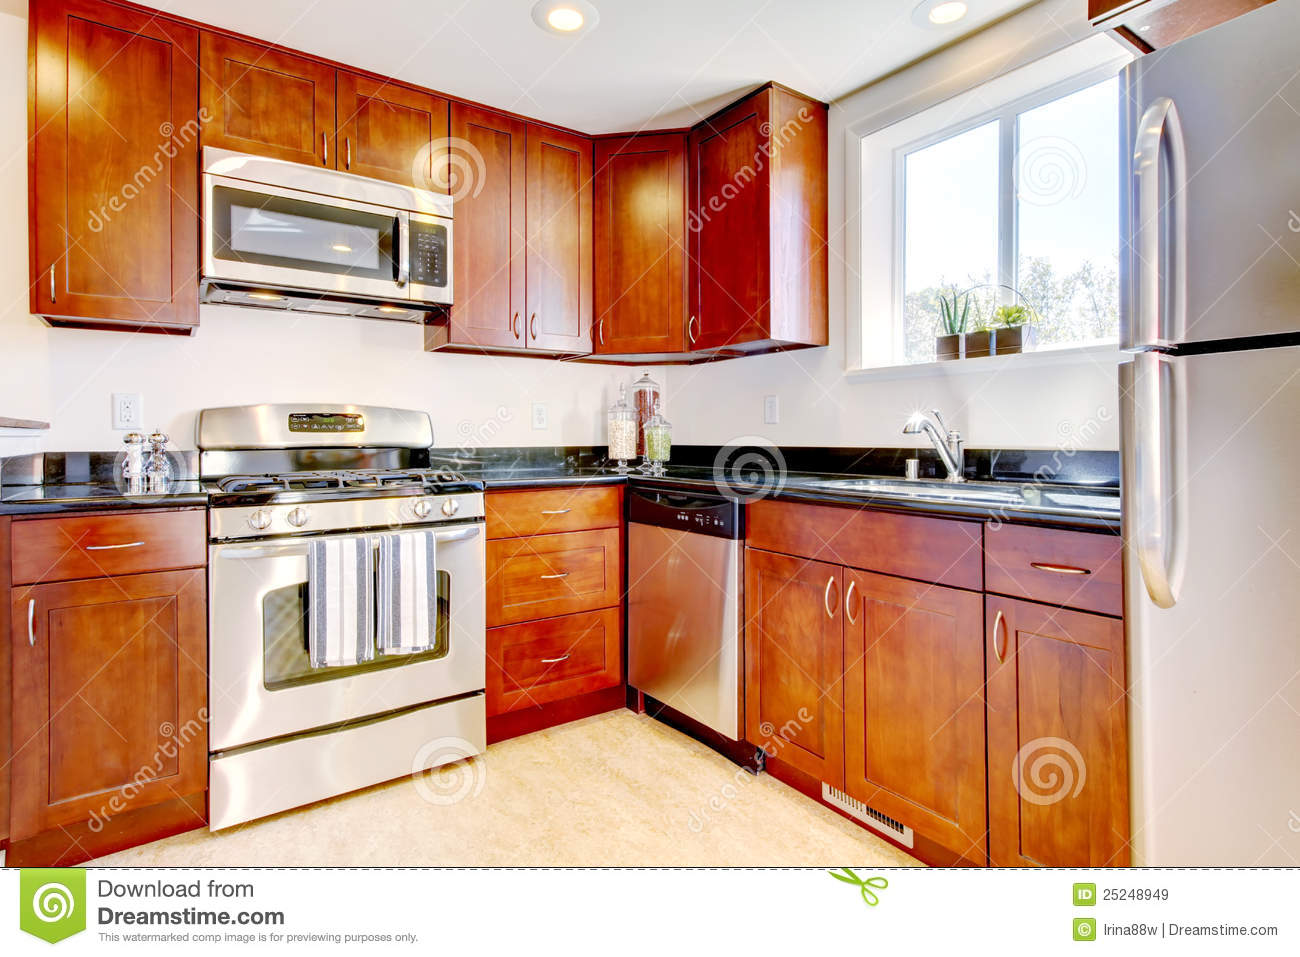 modern cherry kitchen with steal appliances royalty free stock images